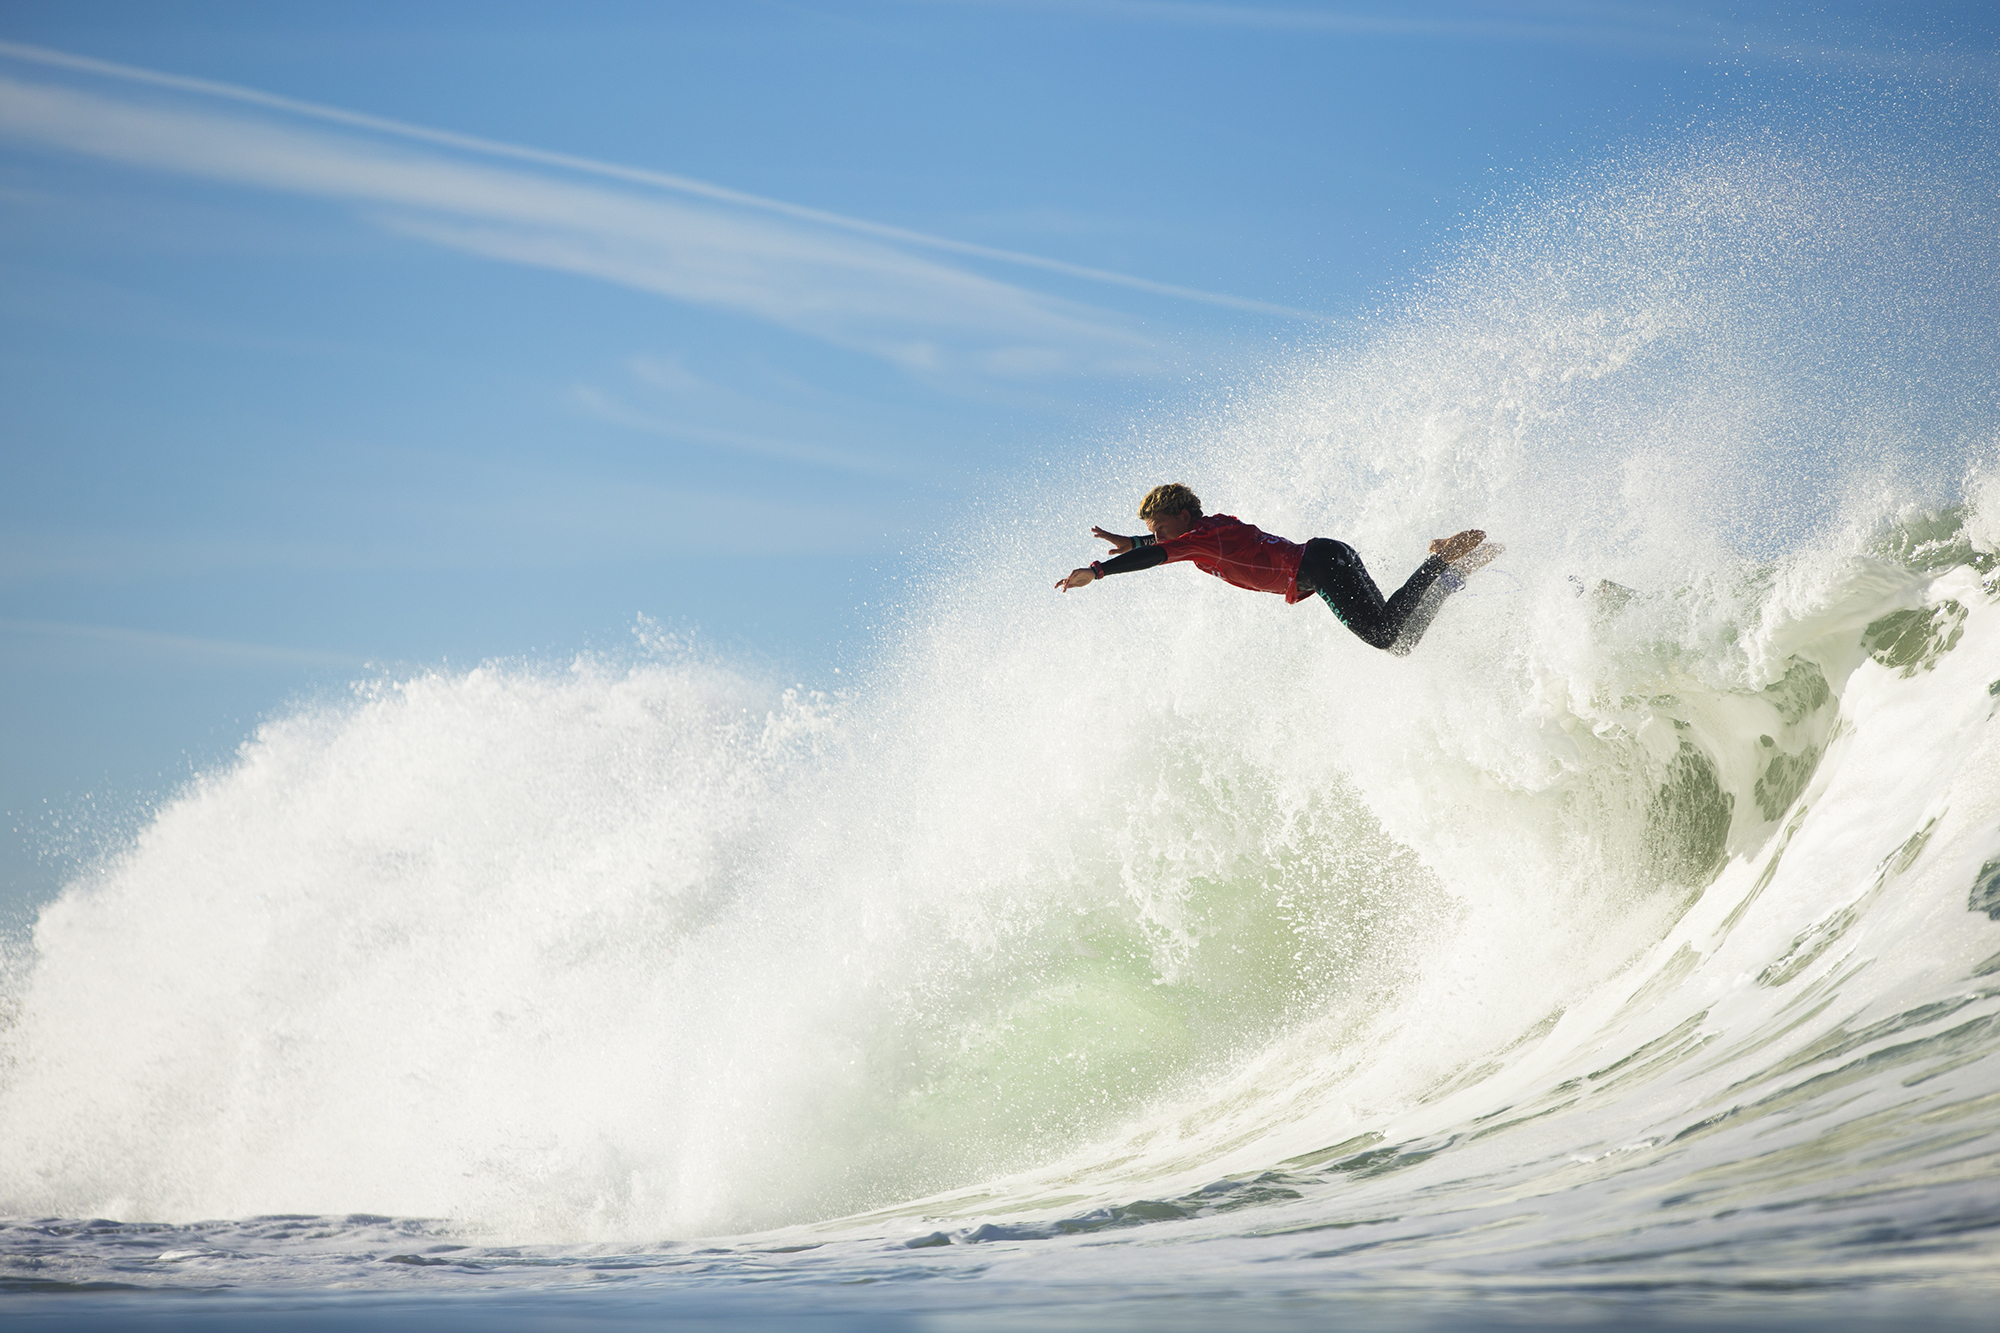 enzo-cavallini-french-surfing-championships-2017-hossegor-we-creative-antoine-justes